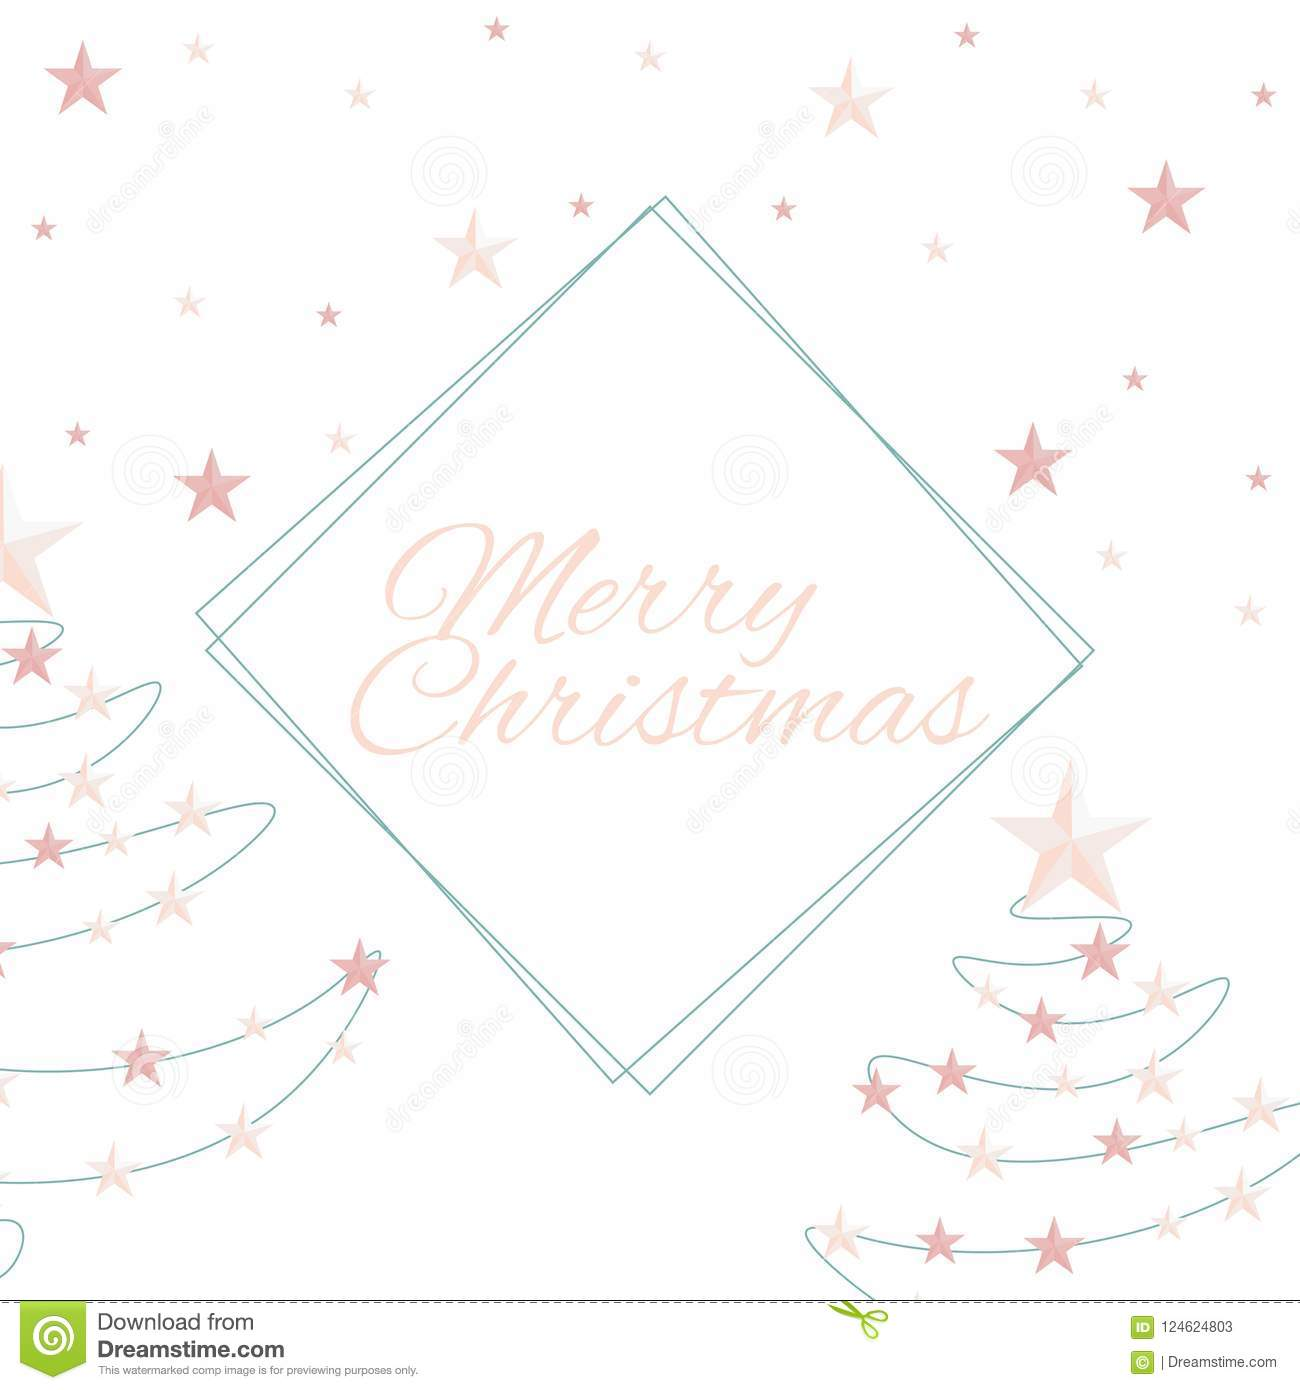 Merry Christmas Quote Vector Text And Stars For Design Greeting